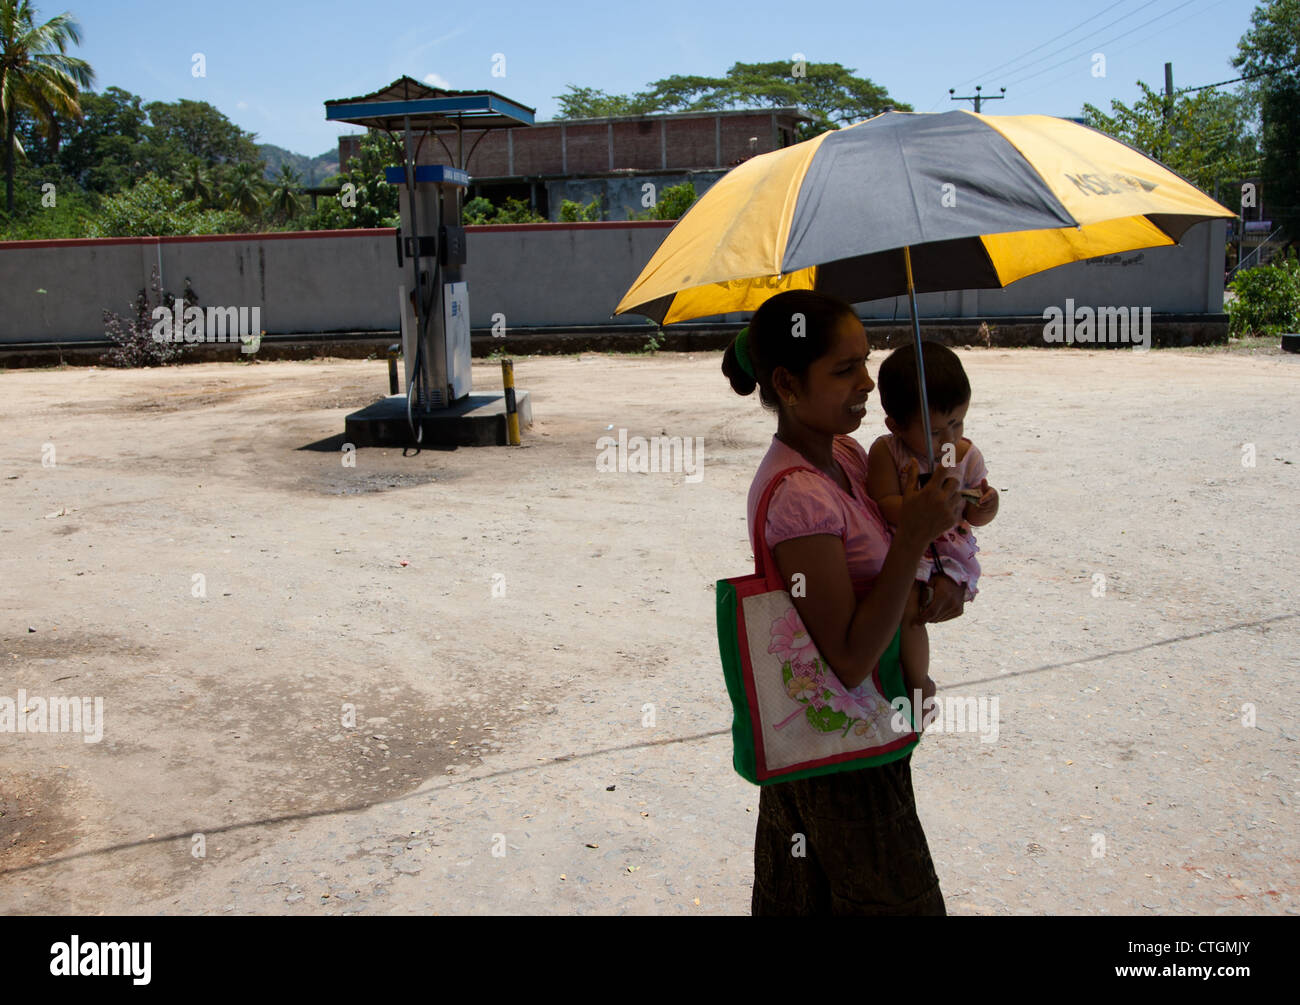 woman and child with umbrella in sri lanka stock photo royalty